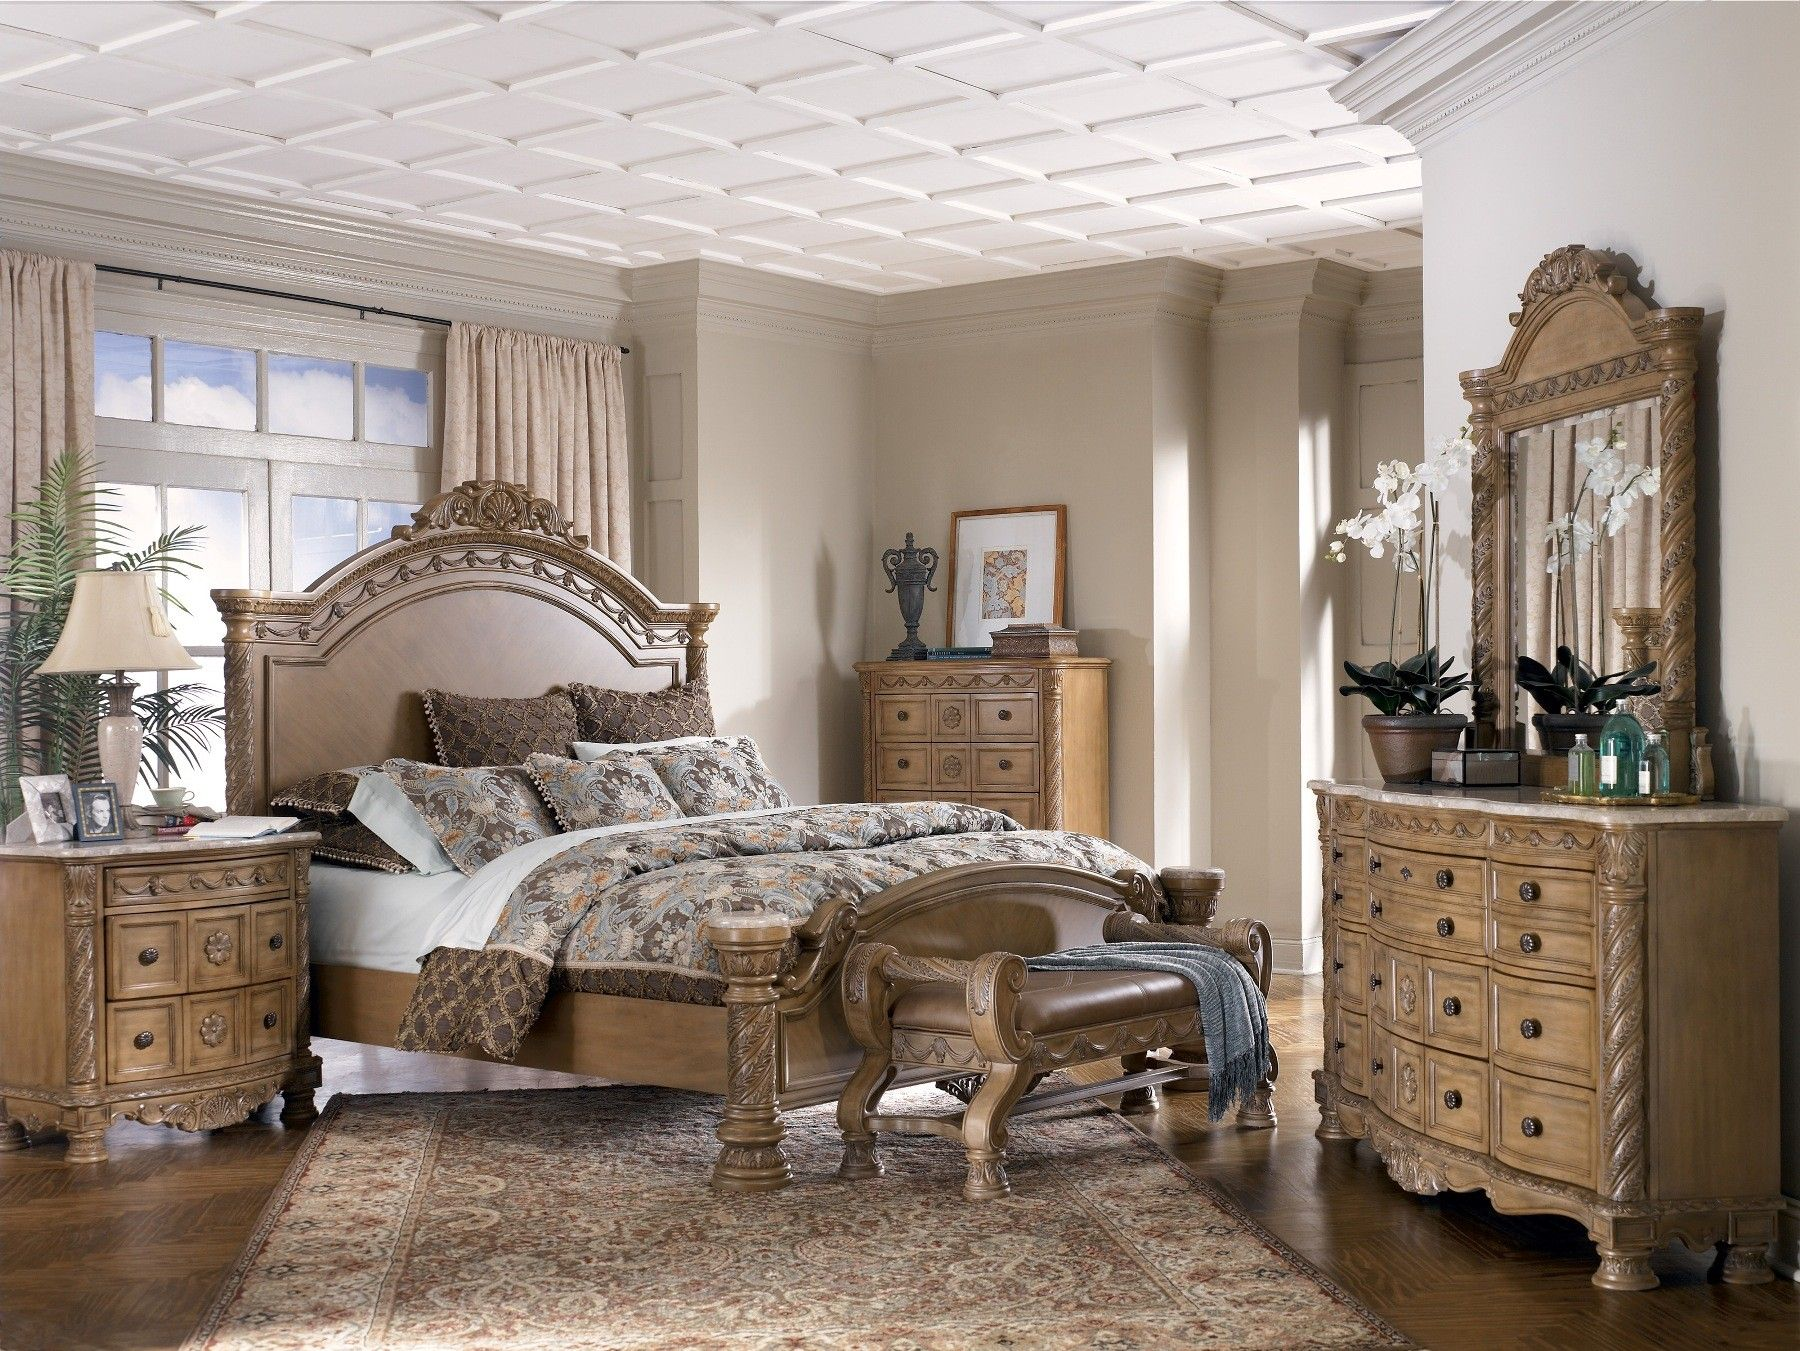 Ashley Furniture Bedroom Sets Interior